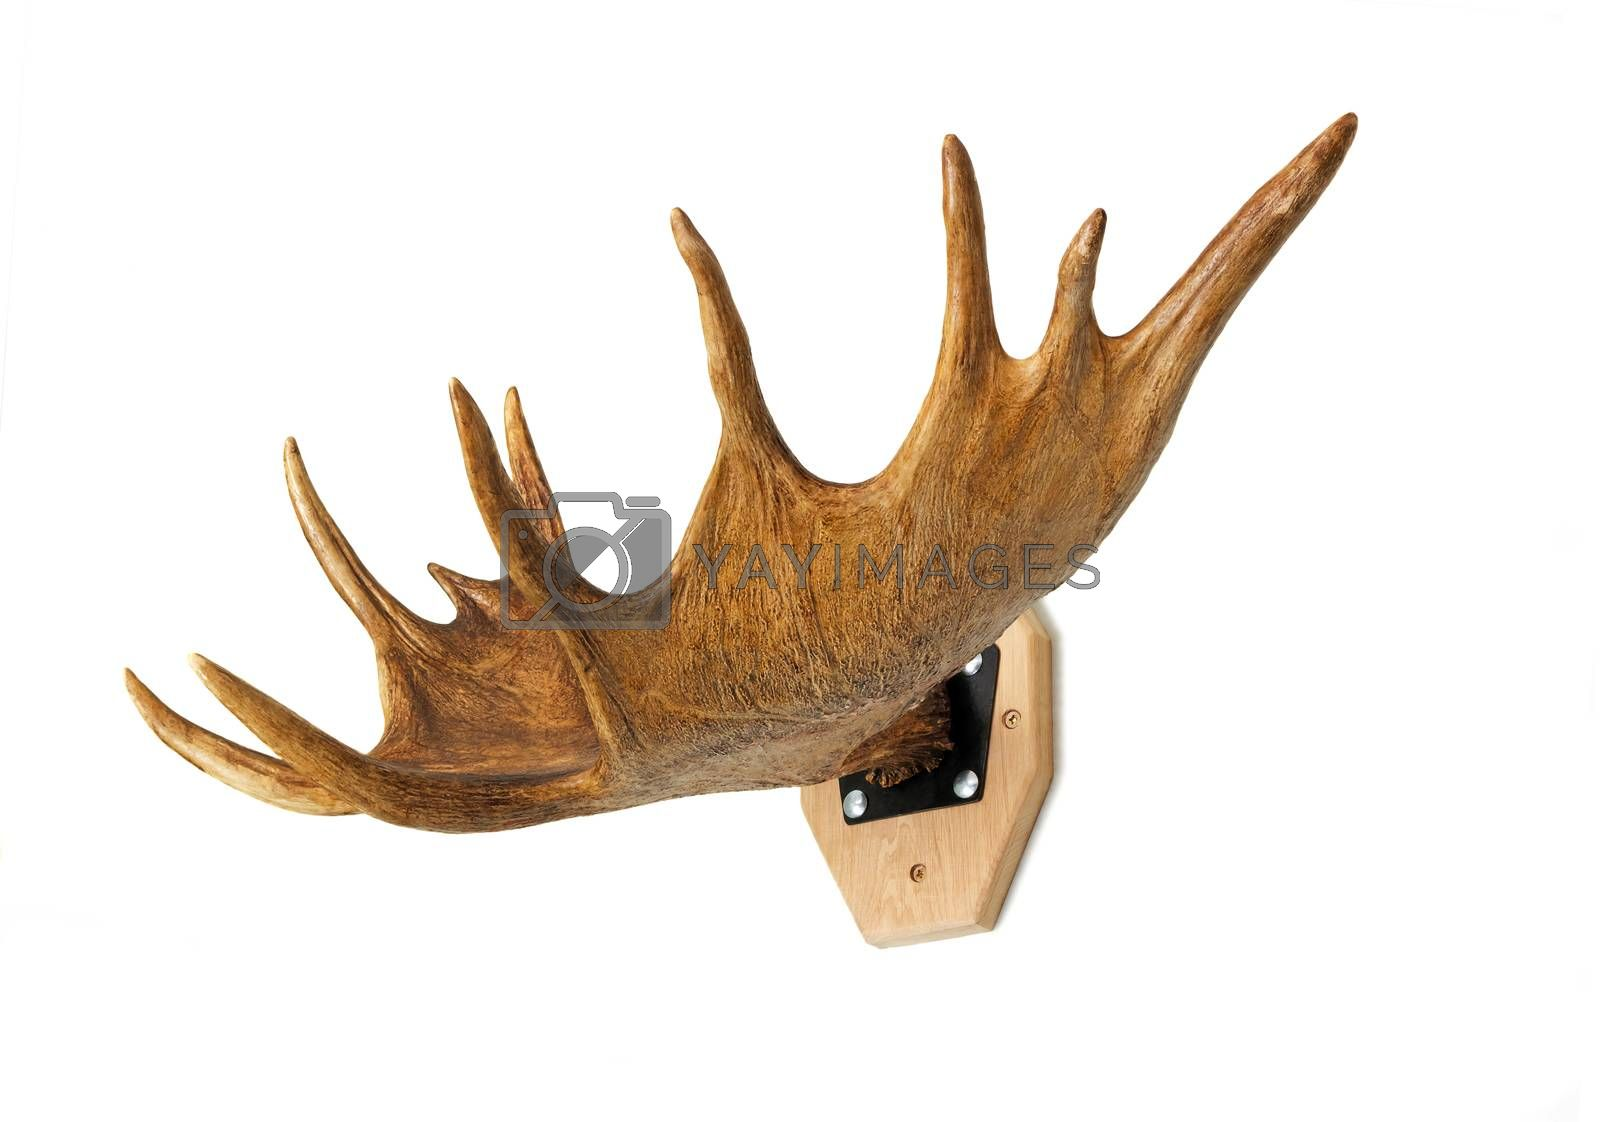 Royalty free image of Trophy hunter - elk horn, presented on a white background. by georgina198